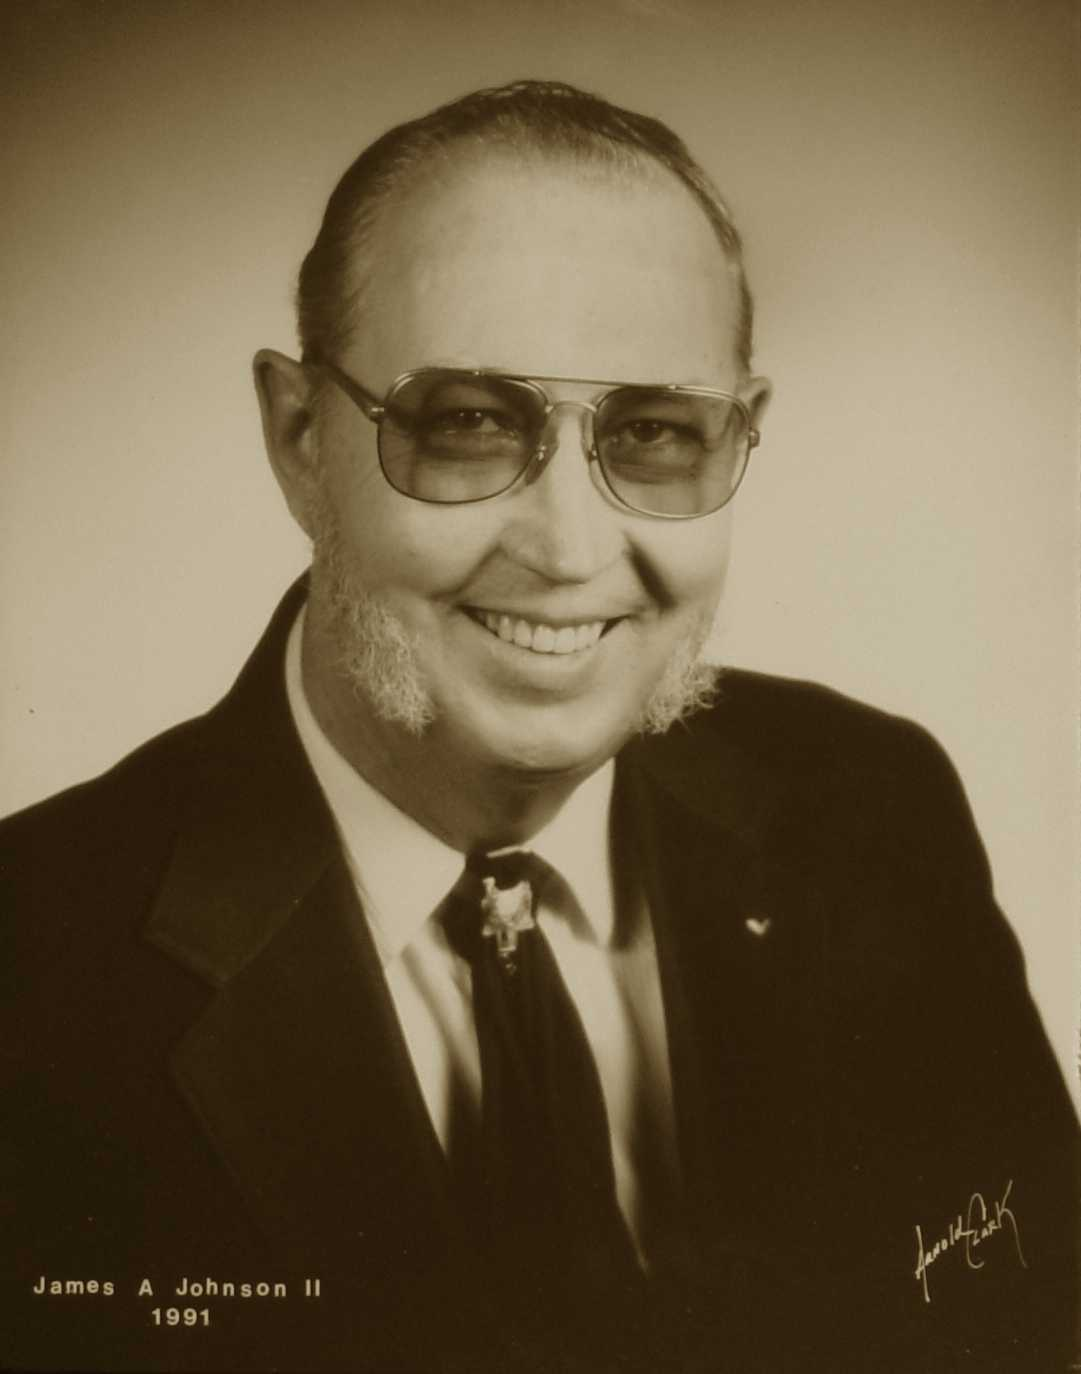 James A. Johnson II, 1991